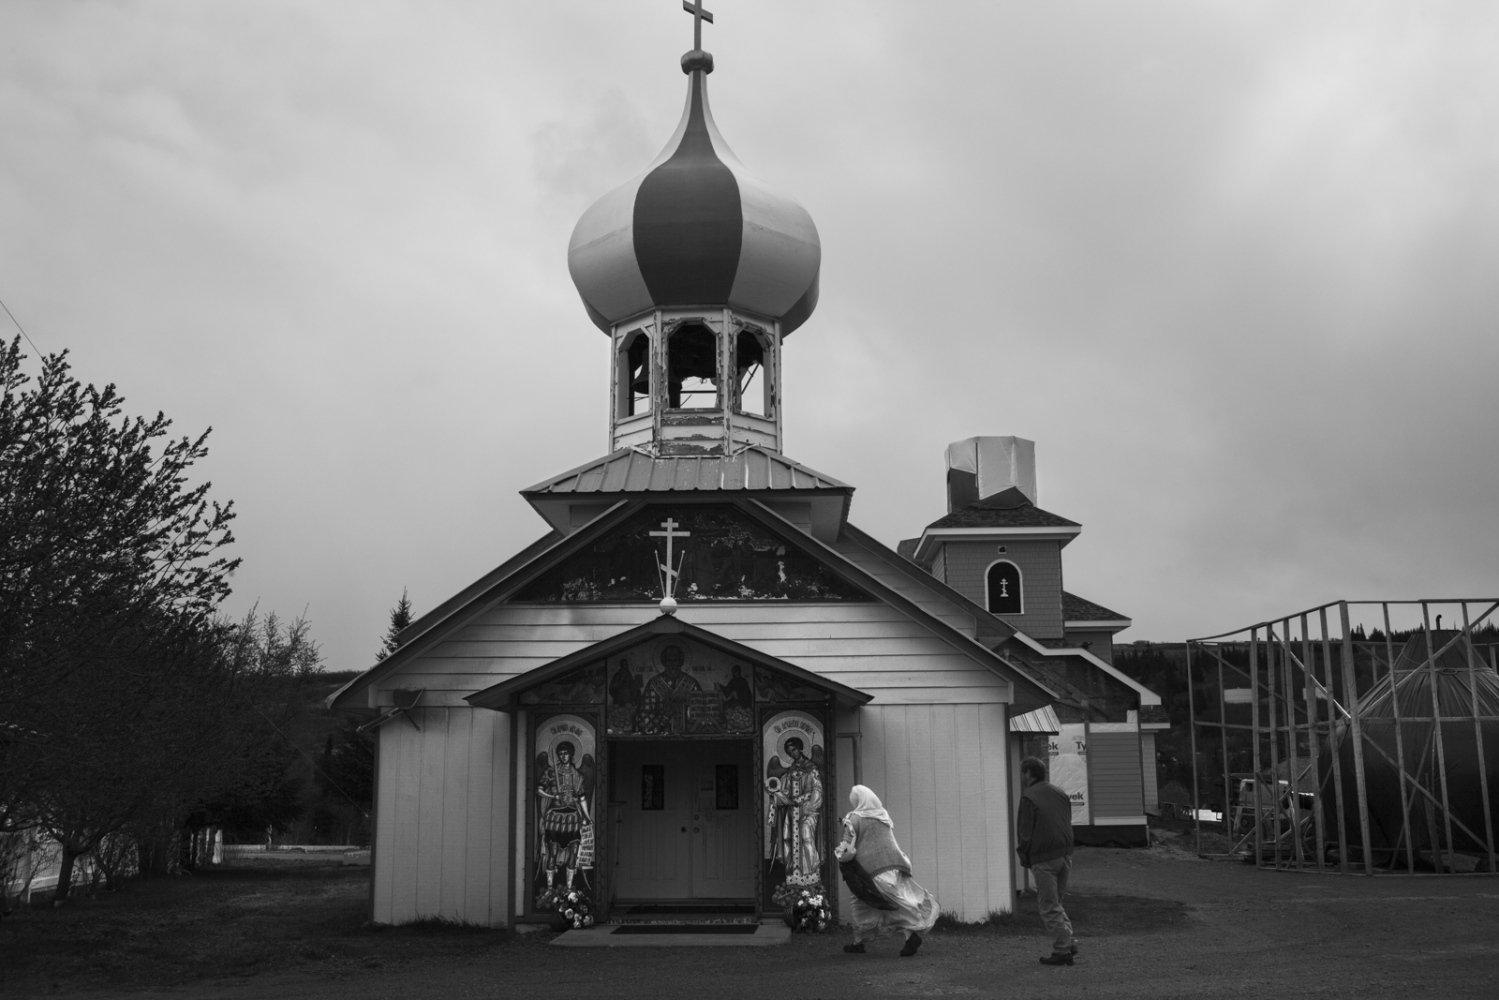 Saint Saint Nicholas Church, patron of Nikolaevsk and all fishermen, was built by Father Kondraty Fefelov in 1984. He was the first priest of Old Believers ordained in Rumania in the whole state of Alaska.